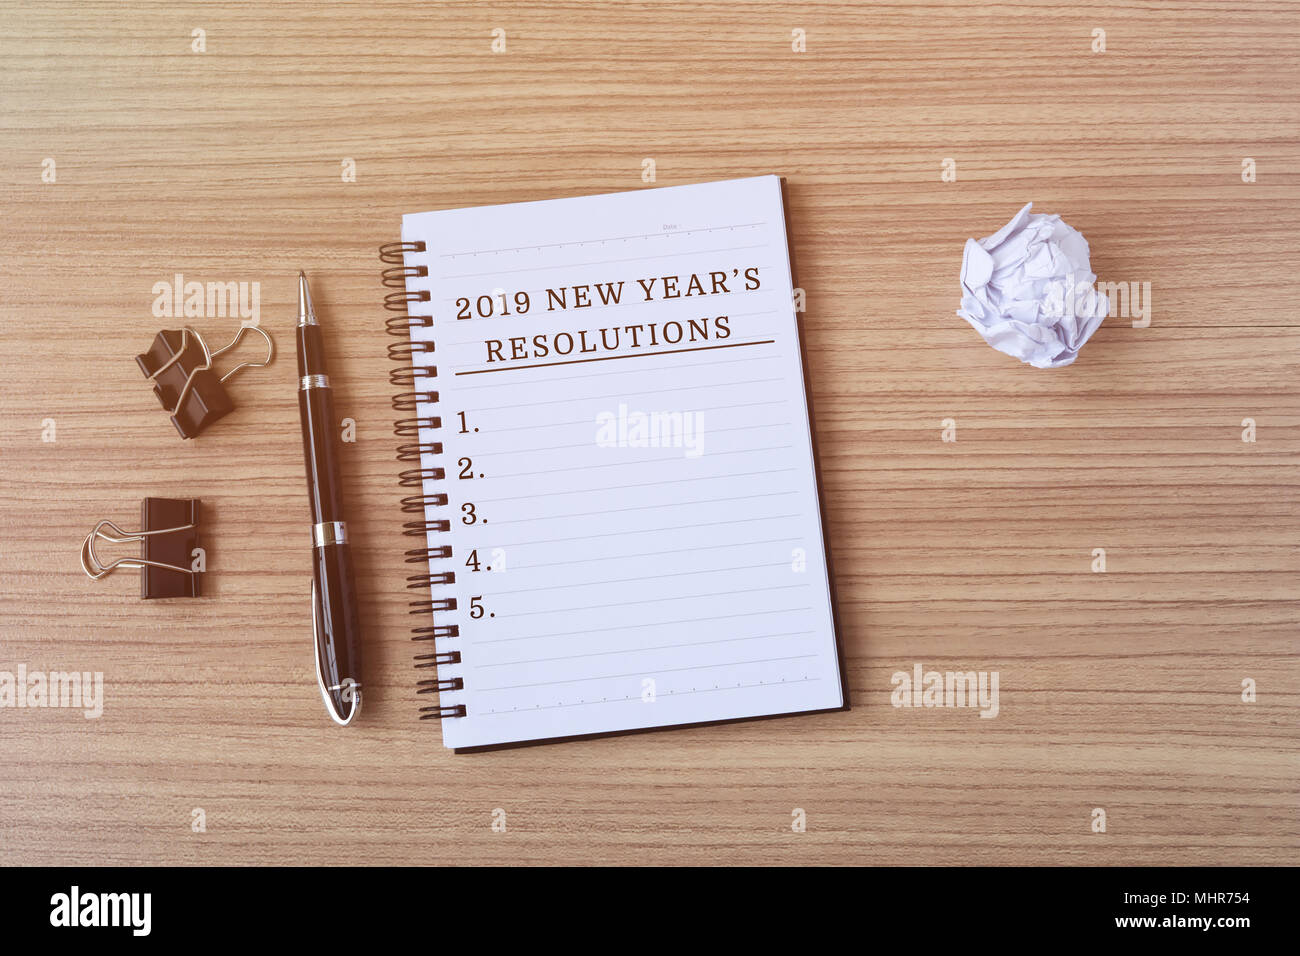 2019 New Years Resolutions 2019 New Year's Resolutions on notepad   retro styles Stock Photo